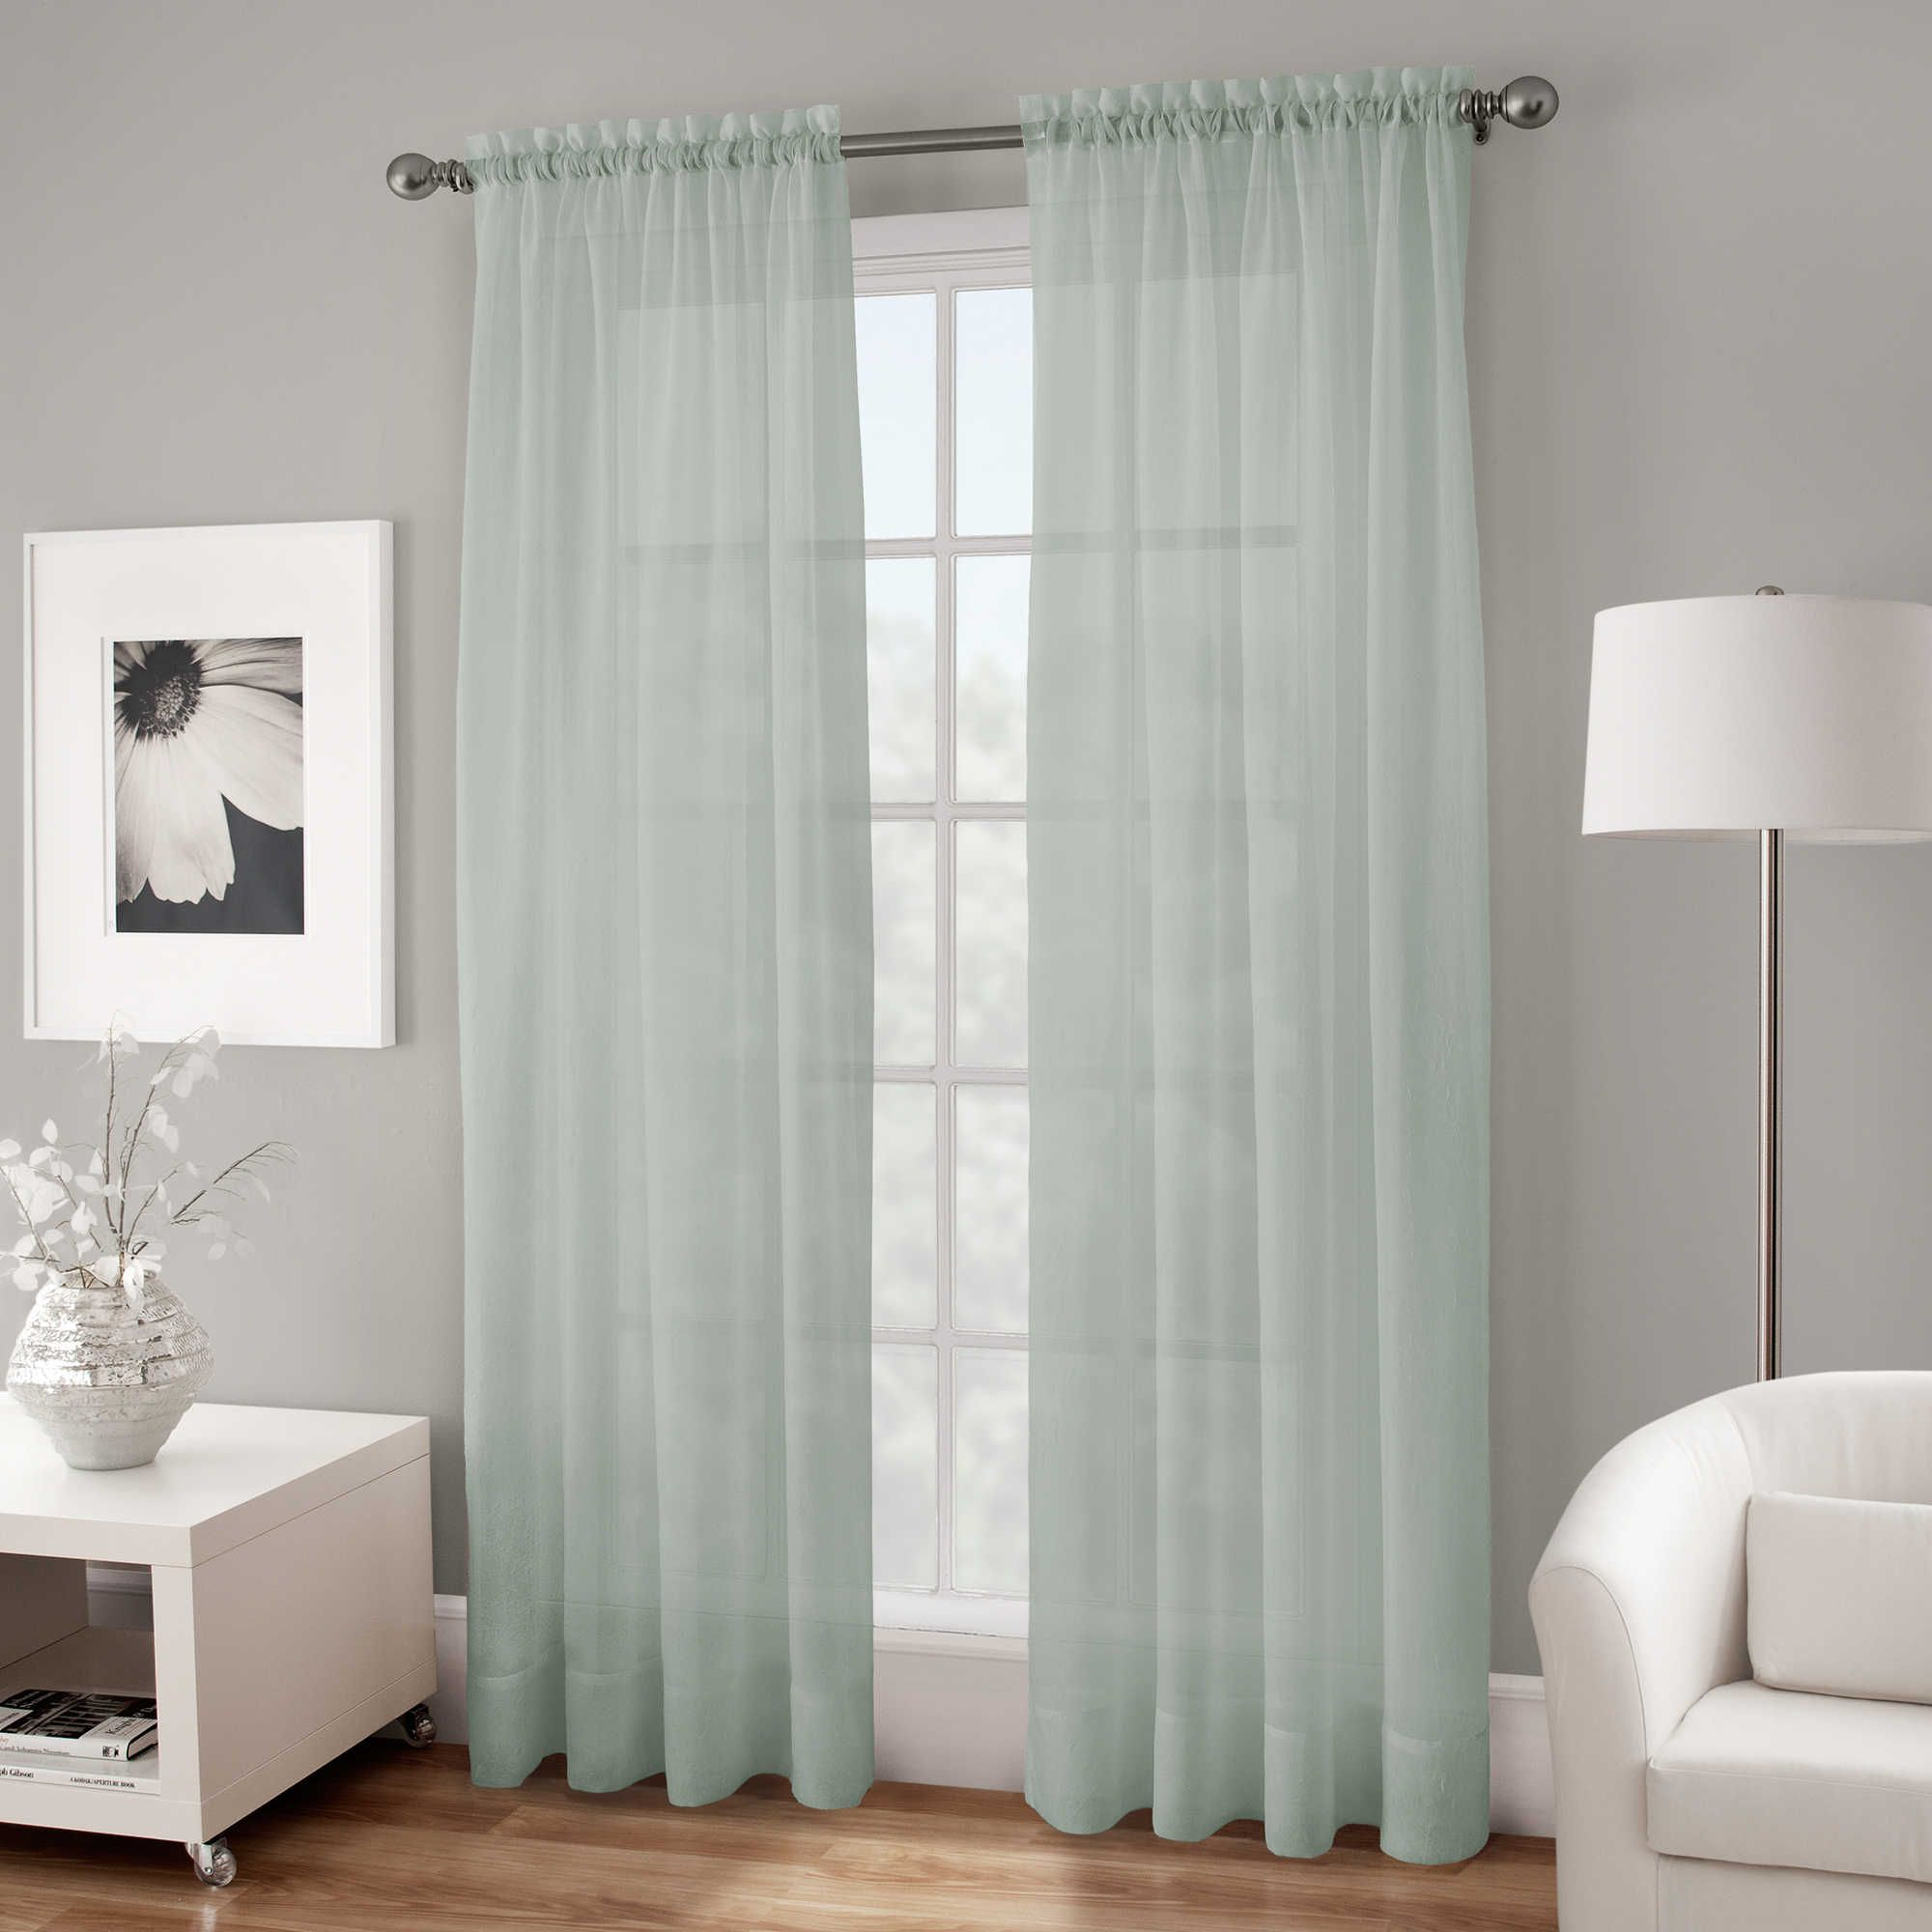 Crushed Voile Sheer 144 Inch Rod Pocket Window Curtain Panel In